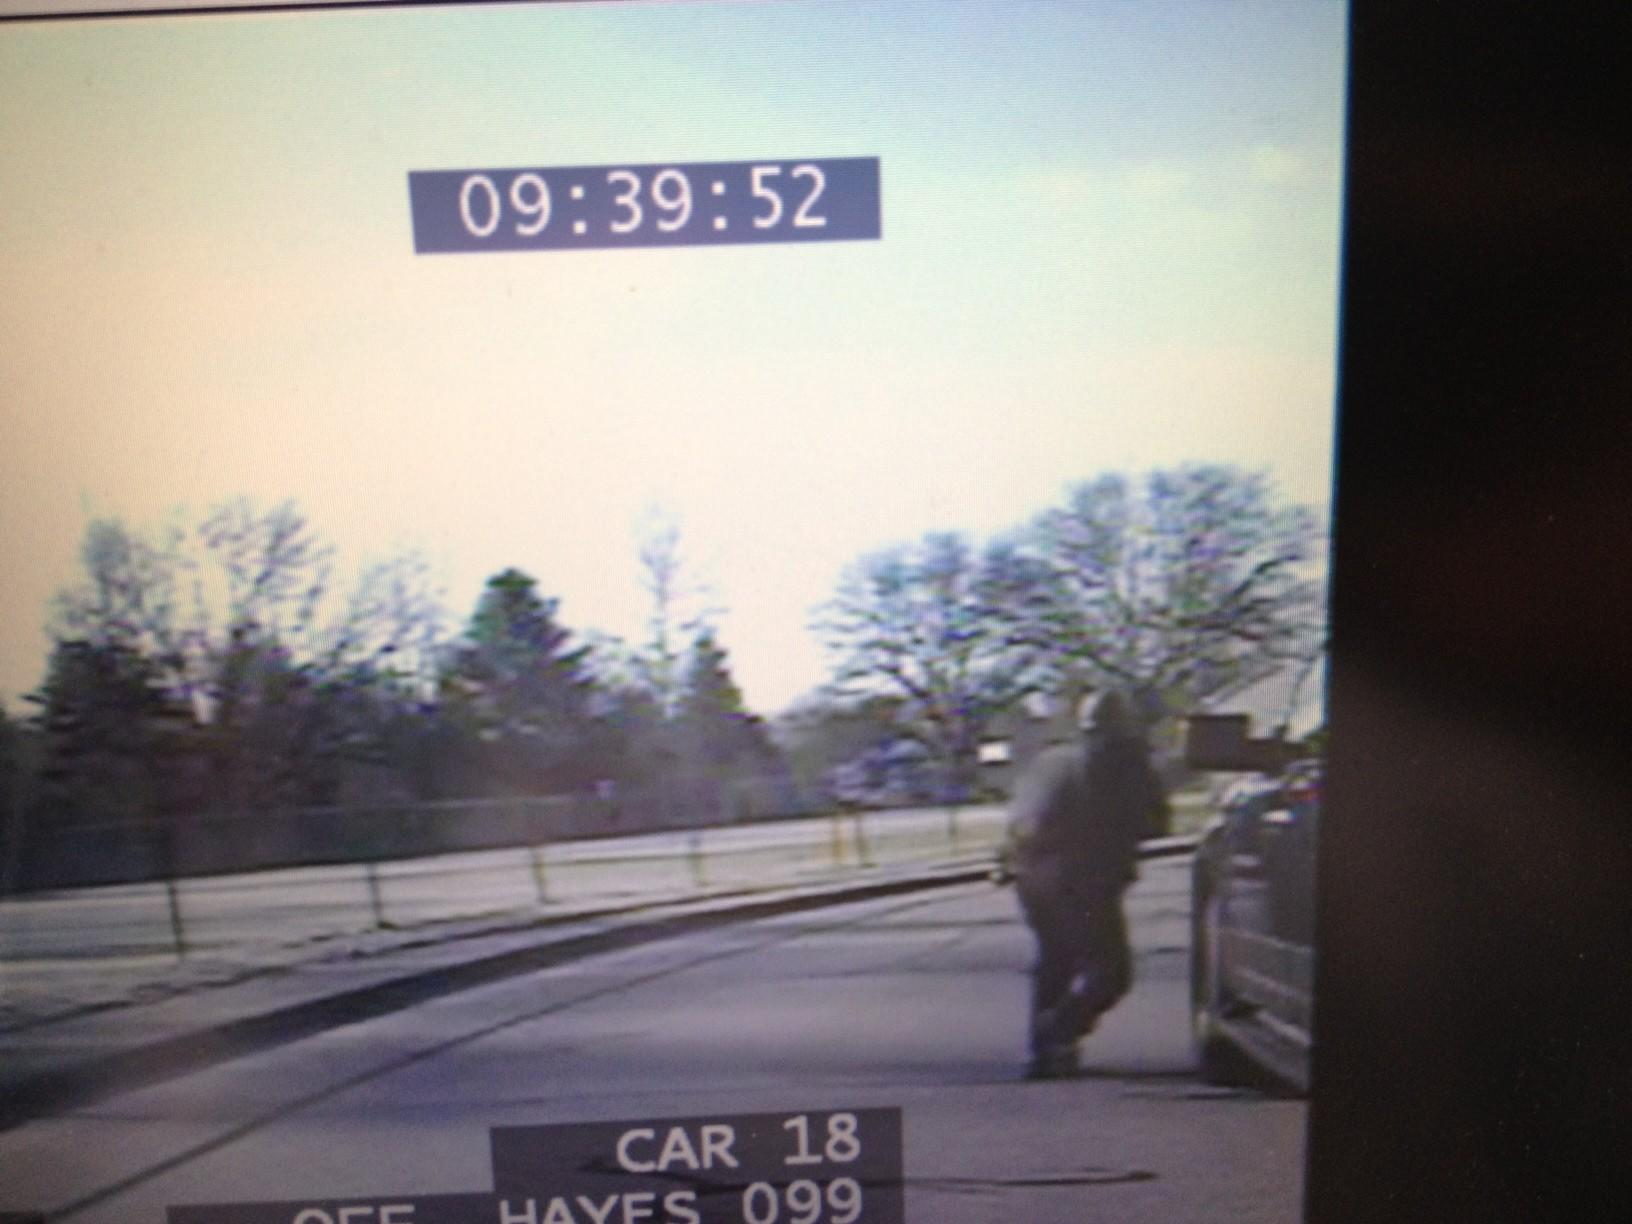 A frame from newly released videos from cameras on cruisers of Newtown officers who responded to the Sandy Hook Elementary School shooting show officers preparing to approach the school.